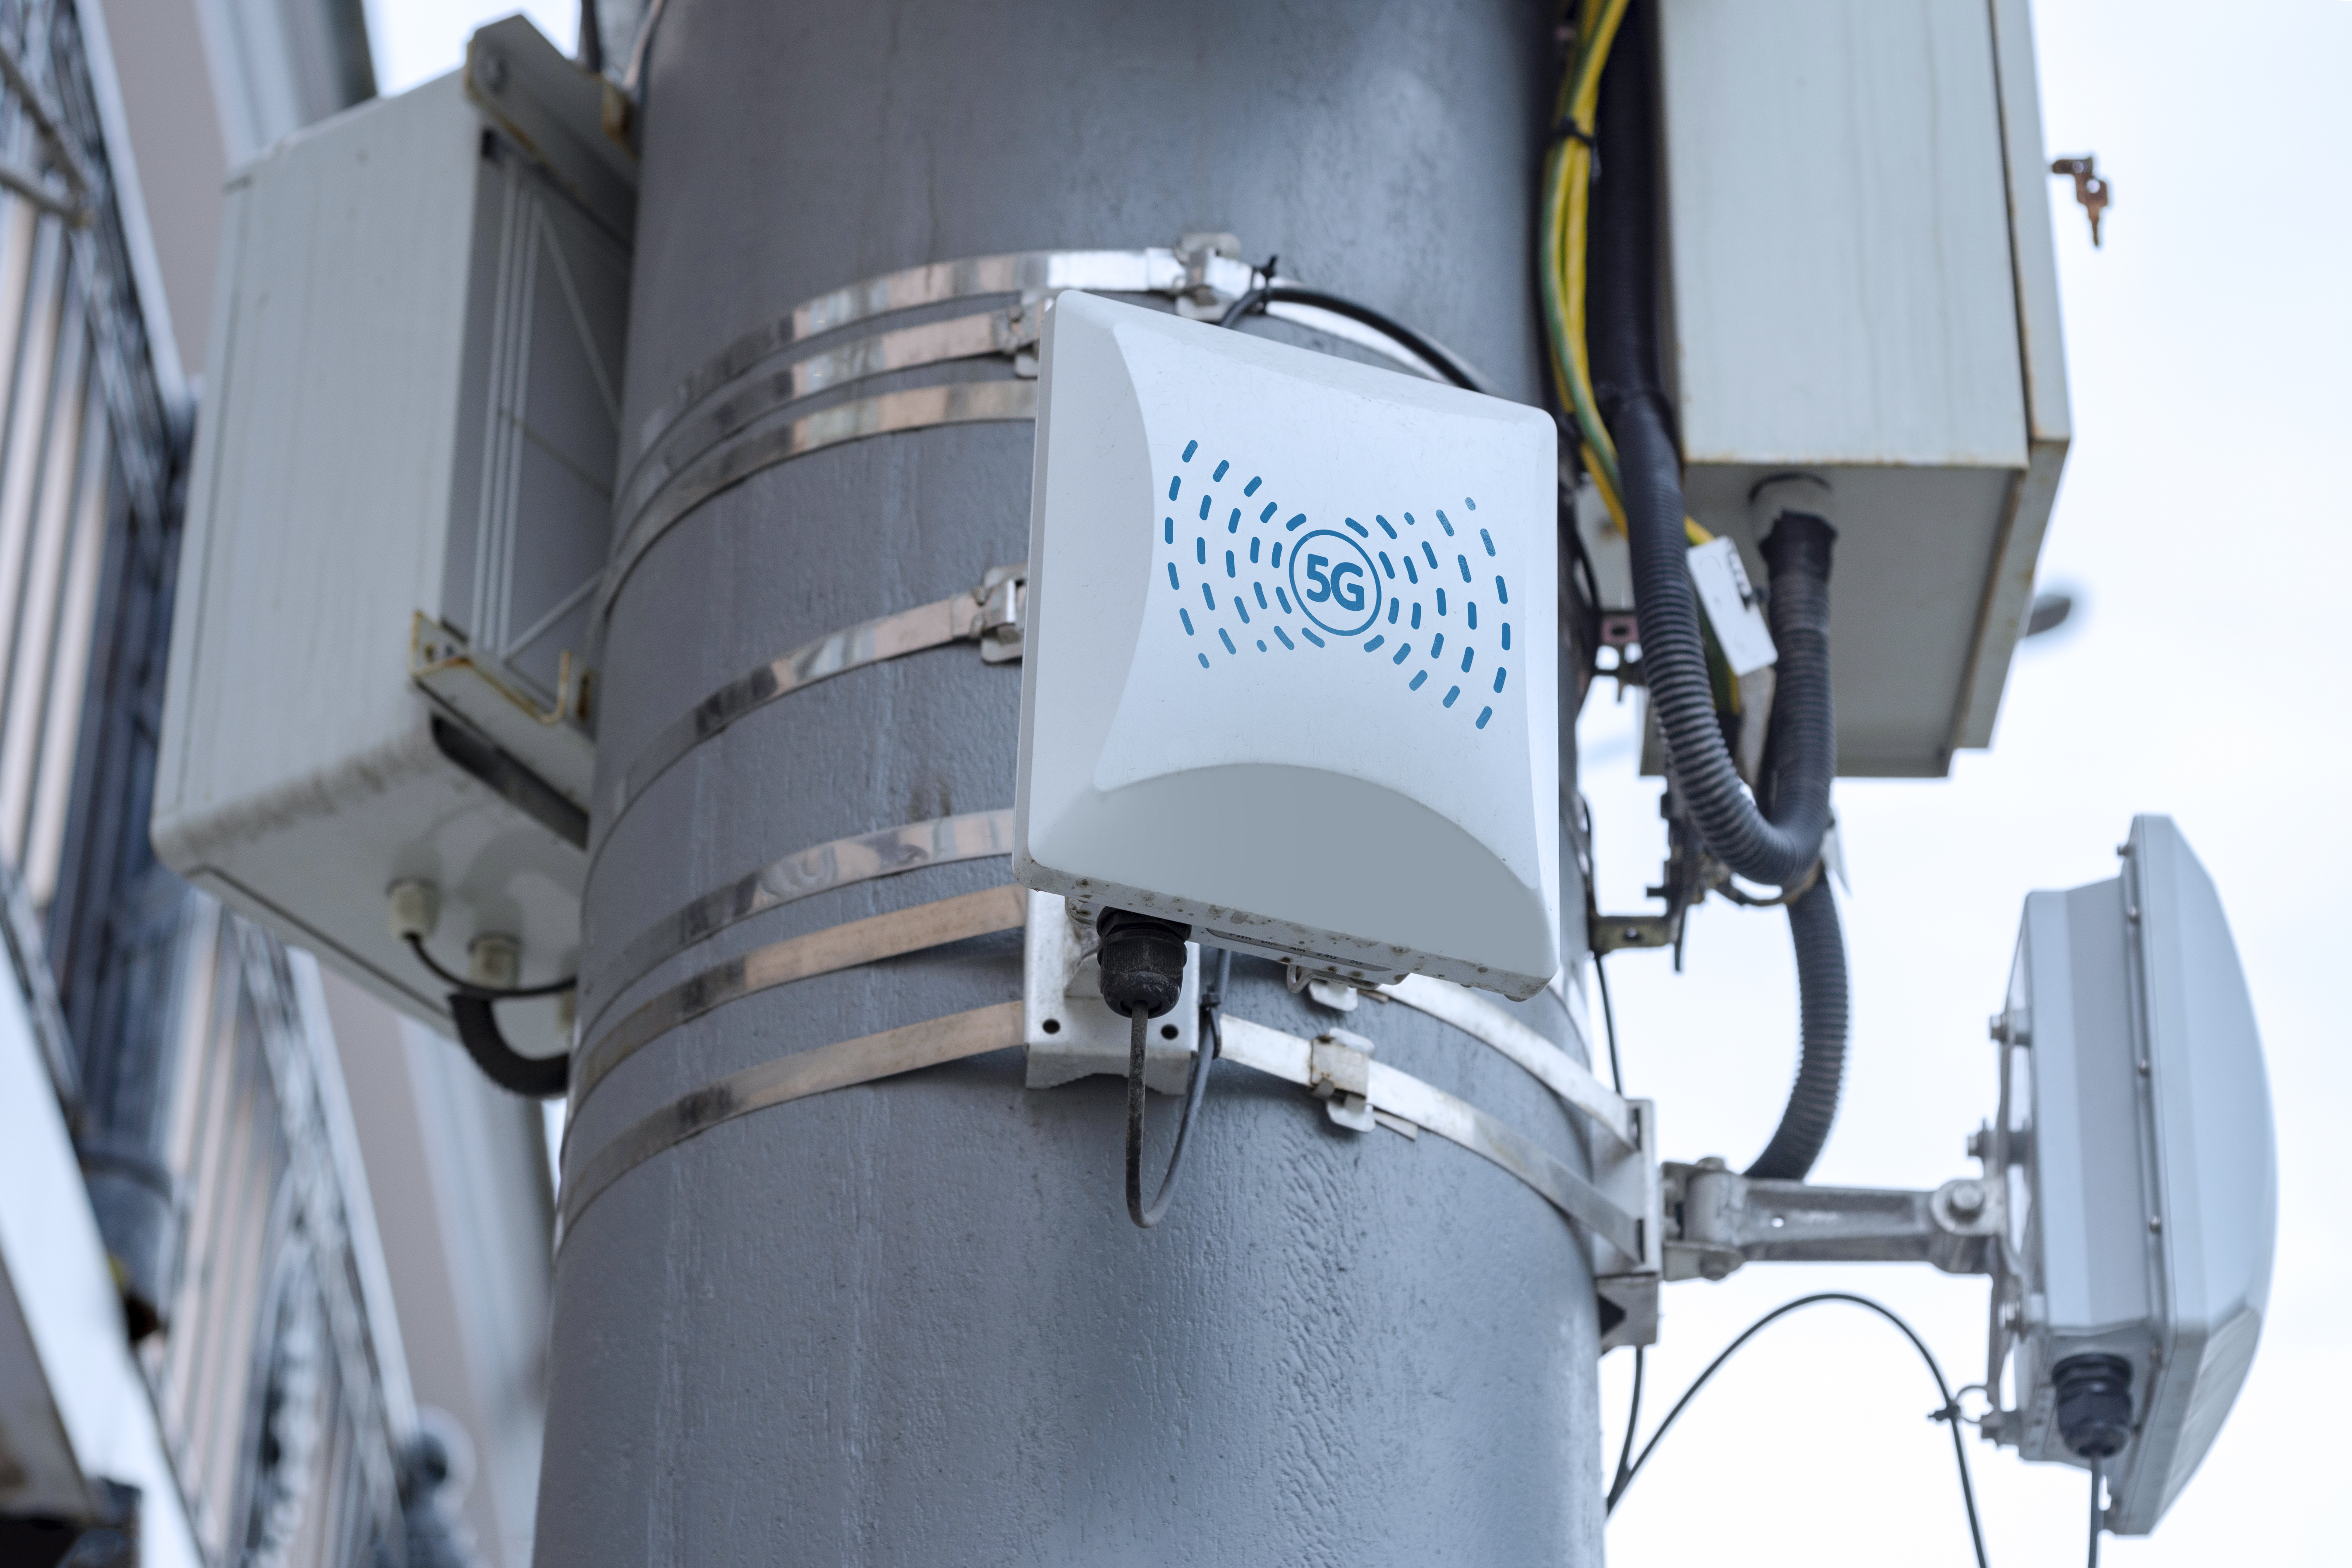 small cell 5g